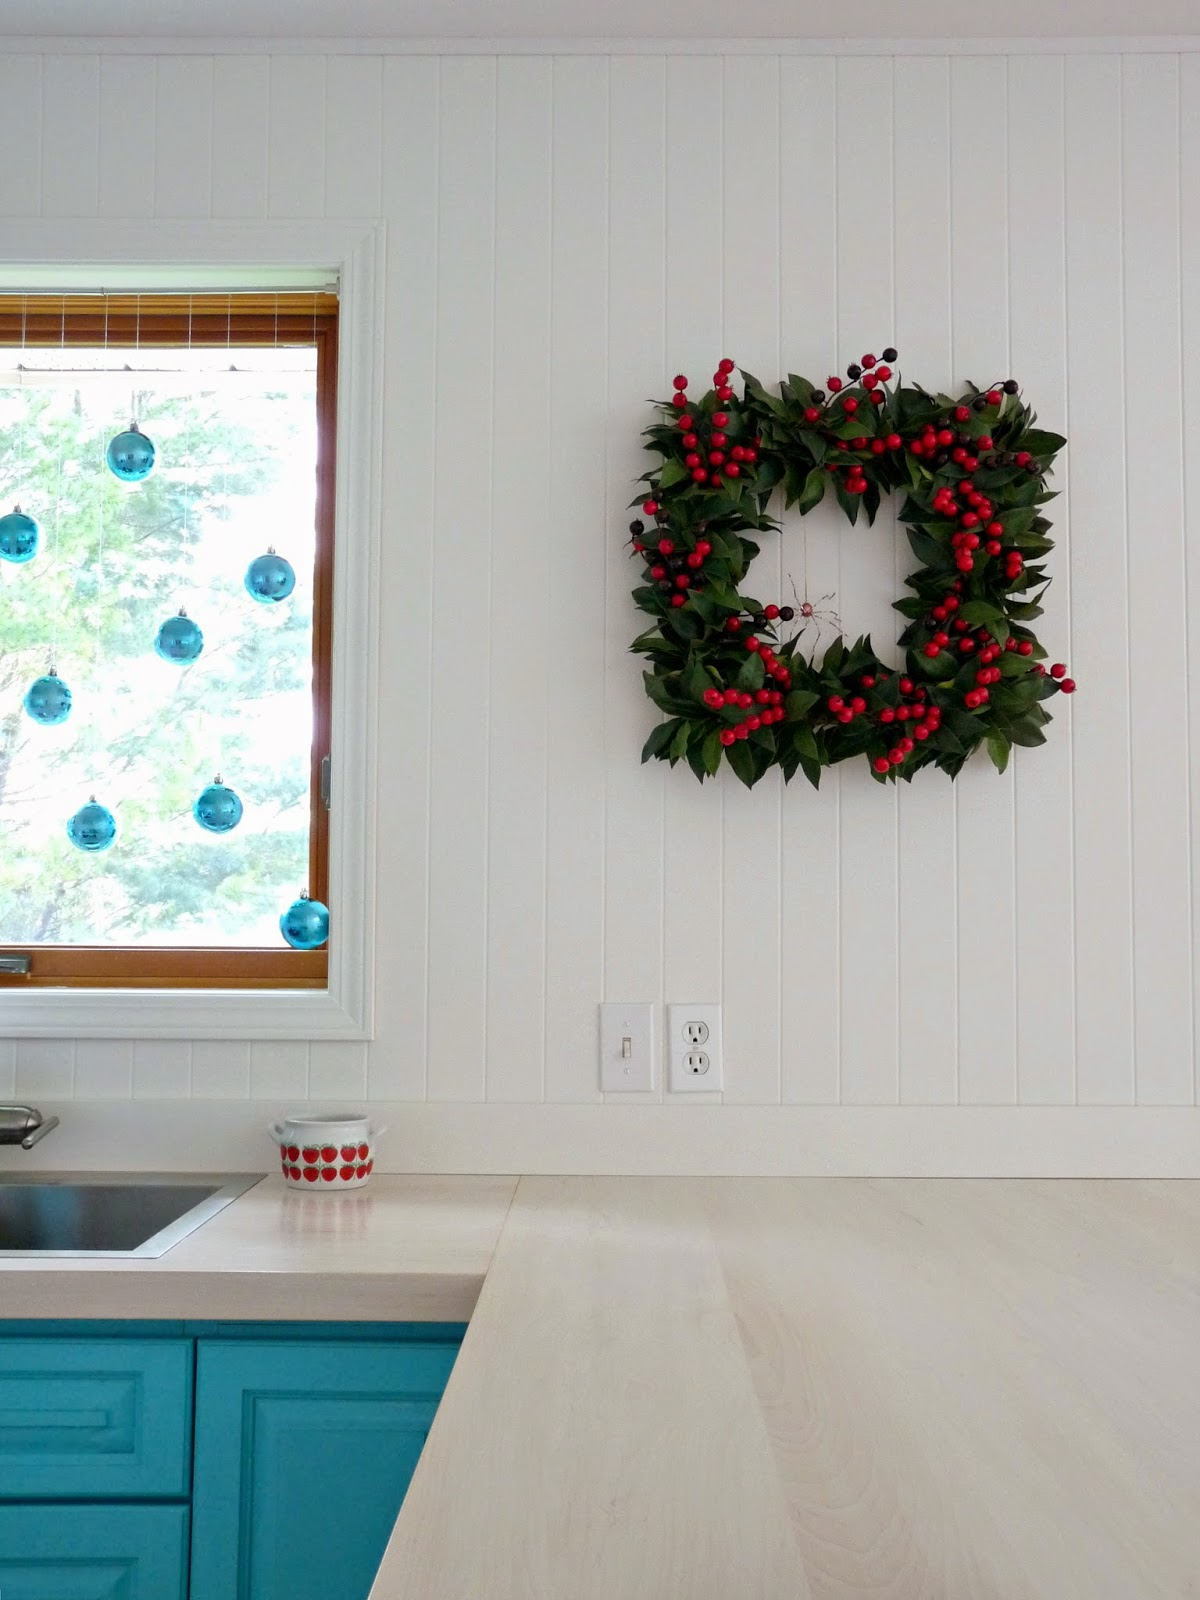 Square wreath with cranberries